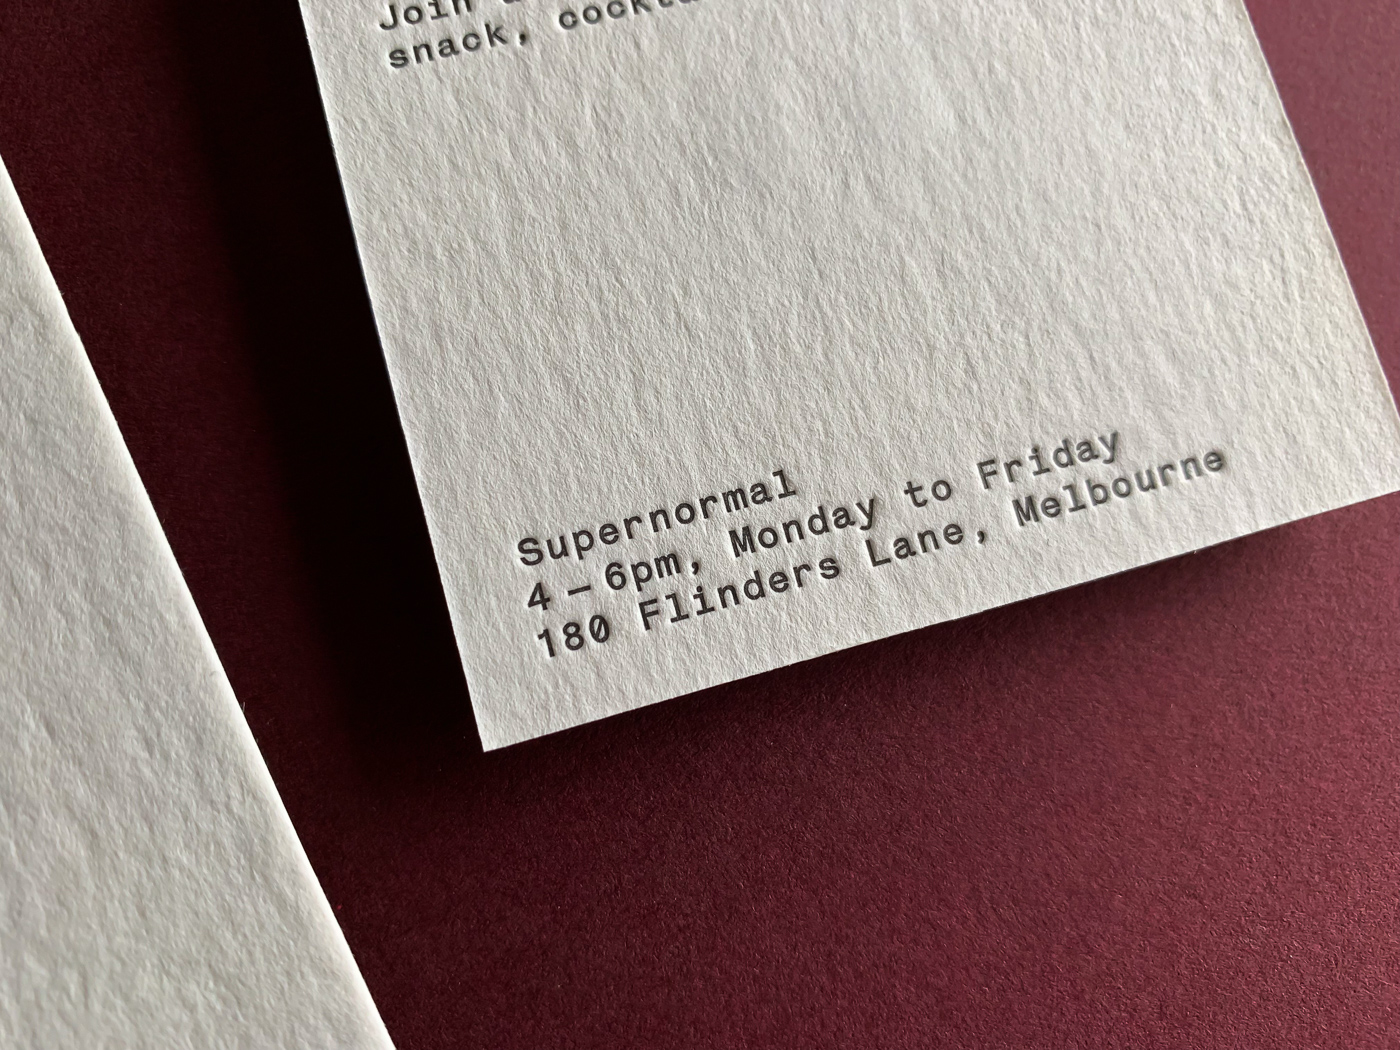 Unique letterpress promotional business card for Supernormal on Wild 4